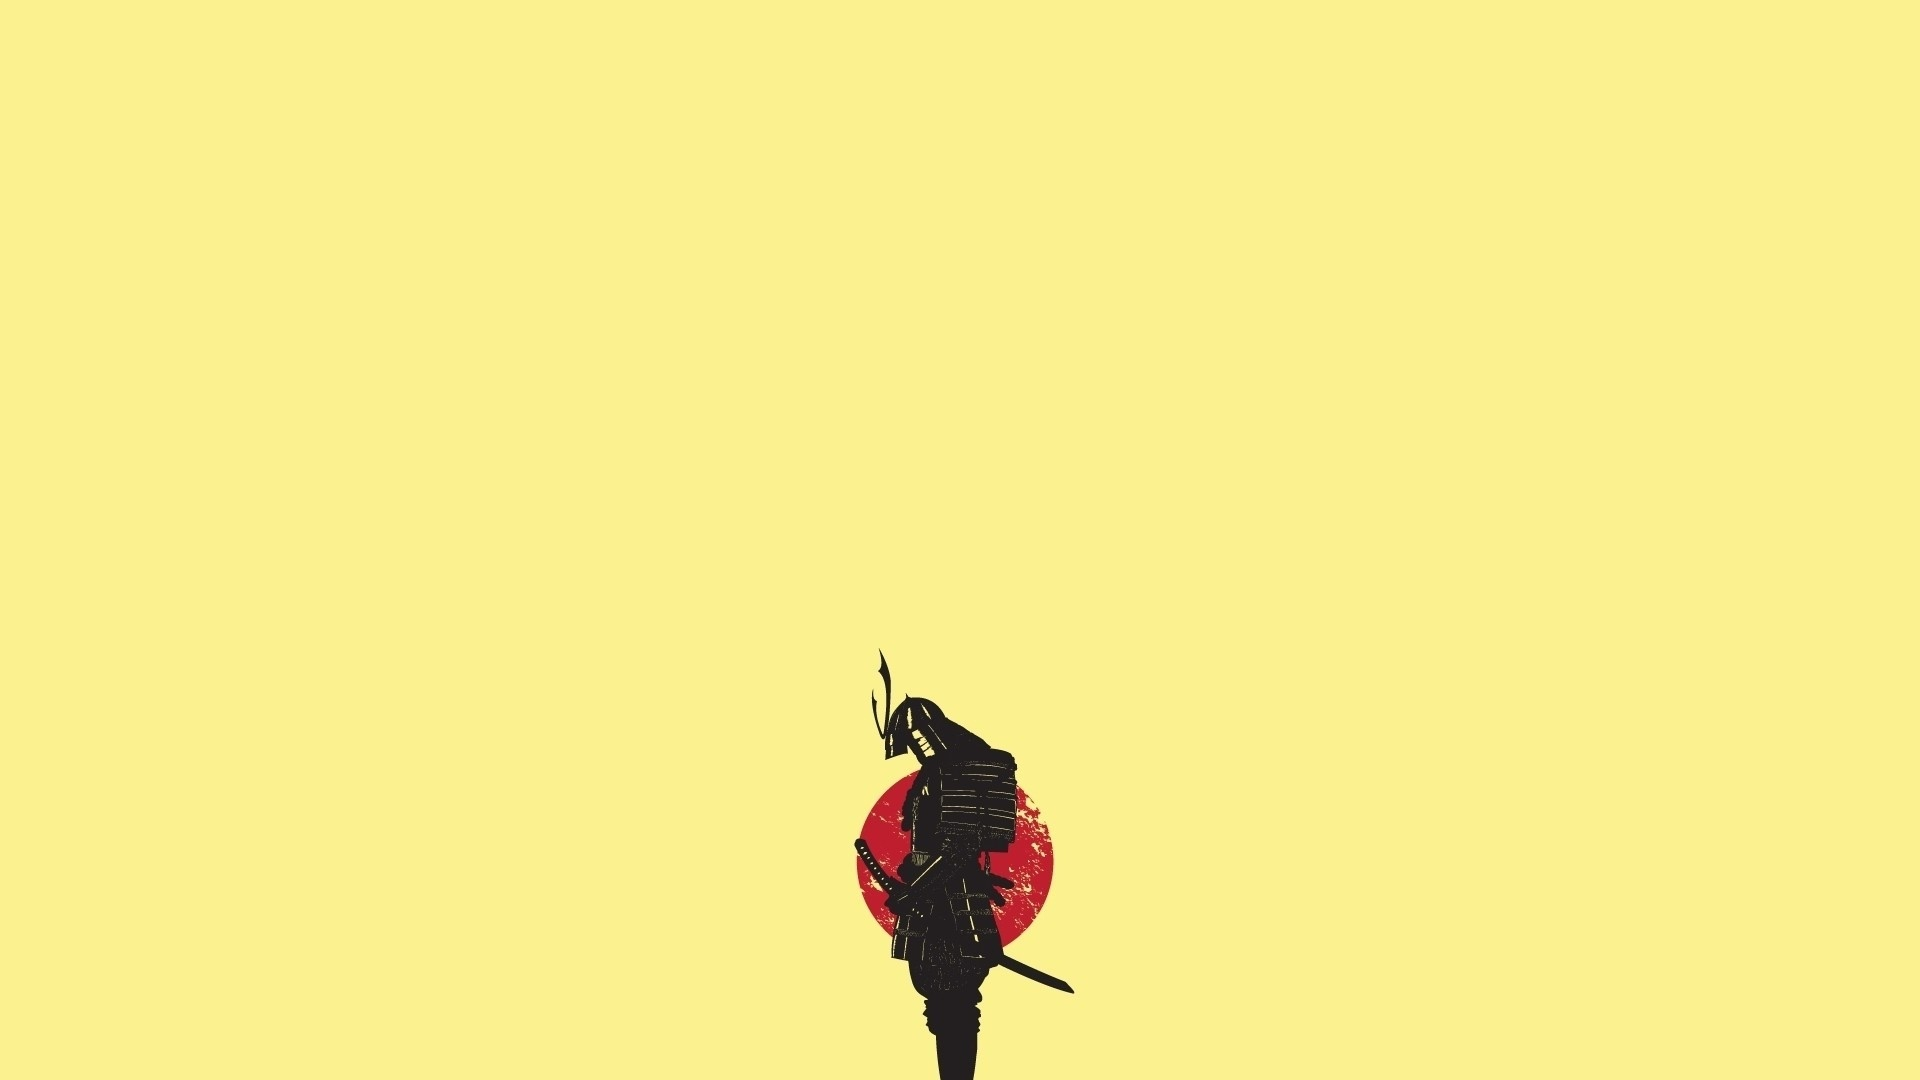 abstract_minimalistic_samurai__1920x1080_wallpaperhi.com